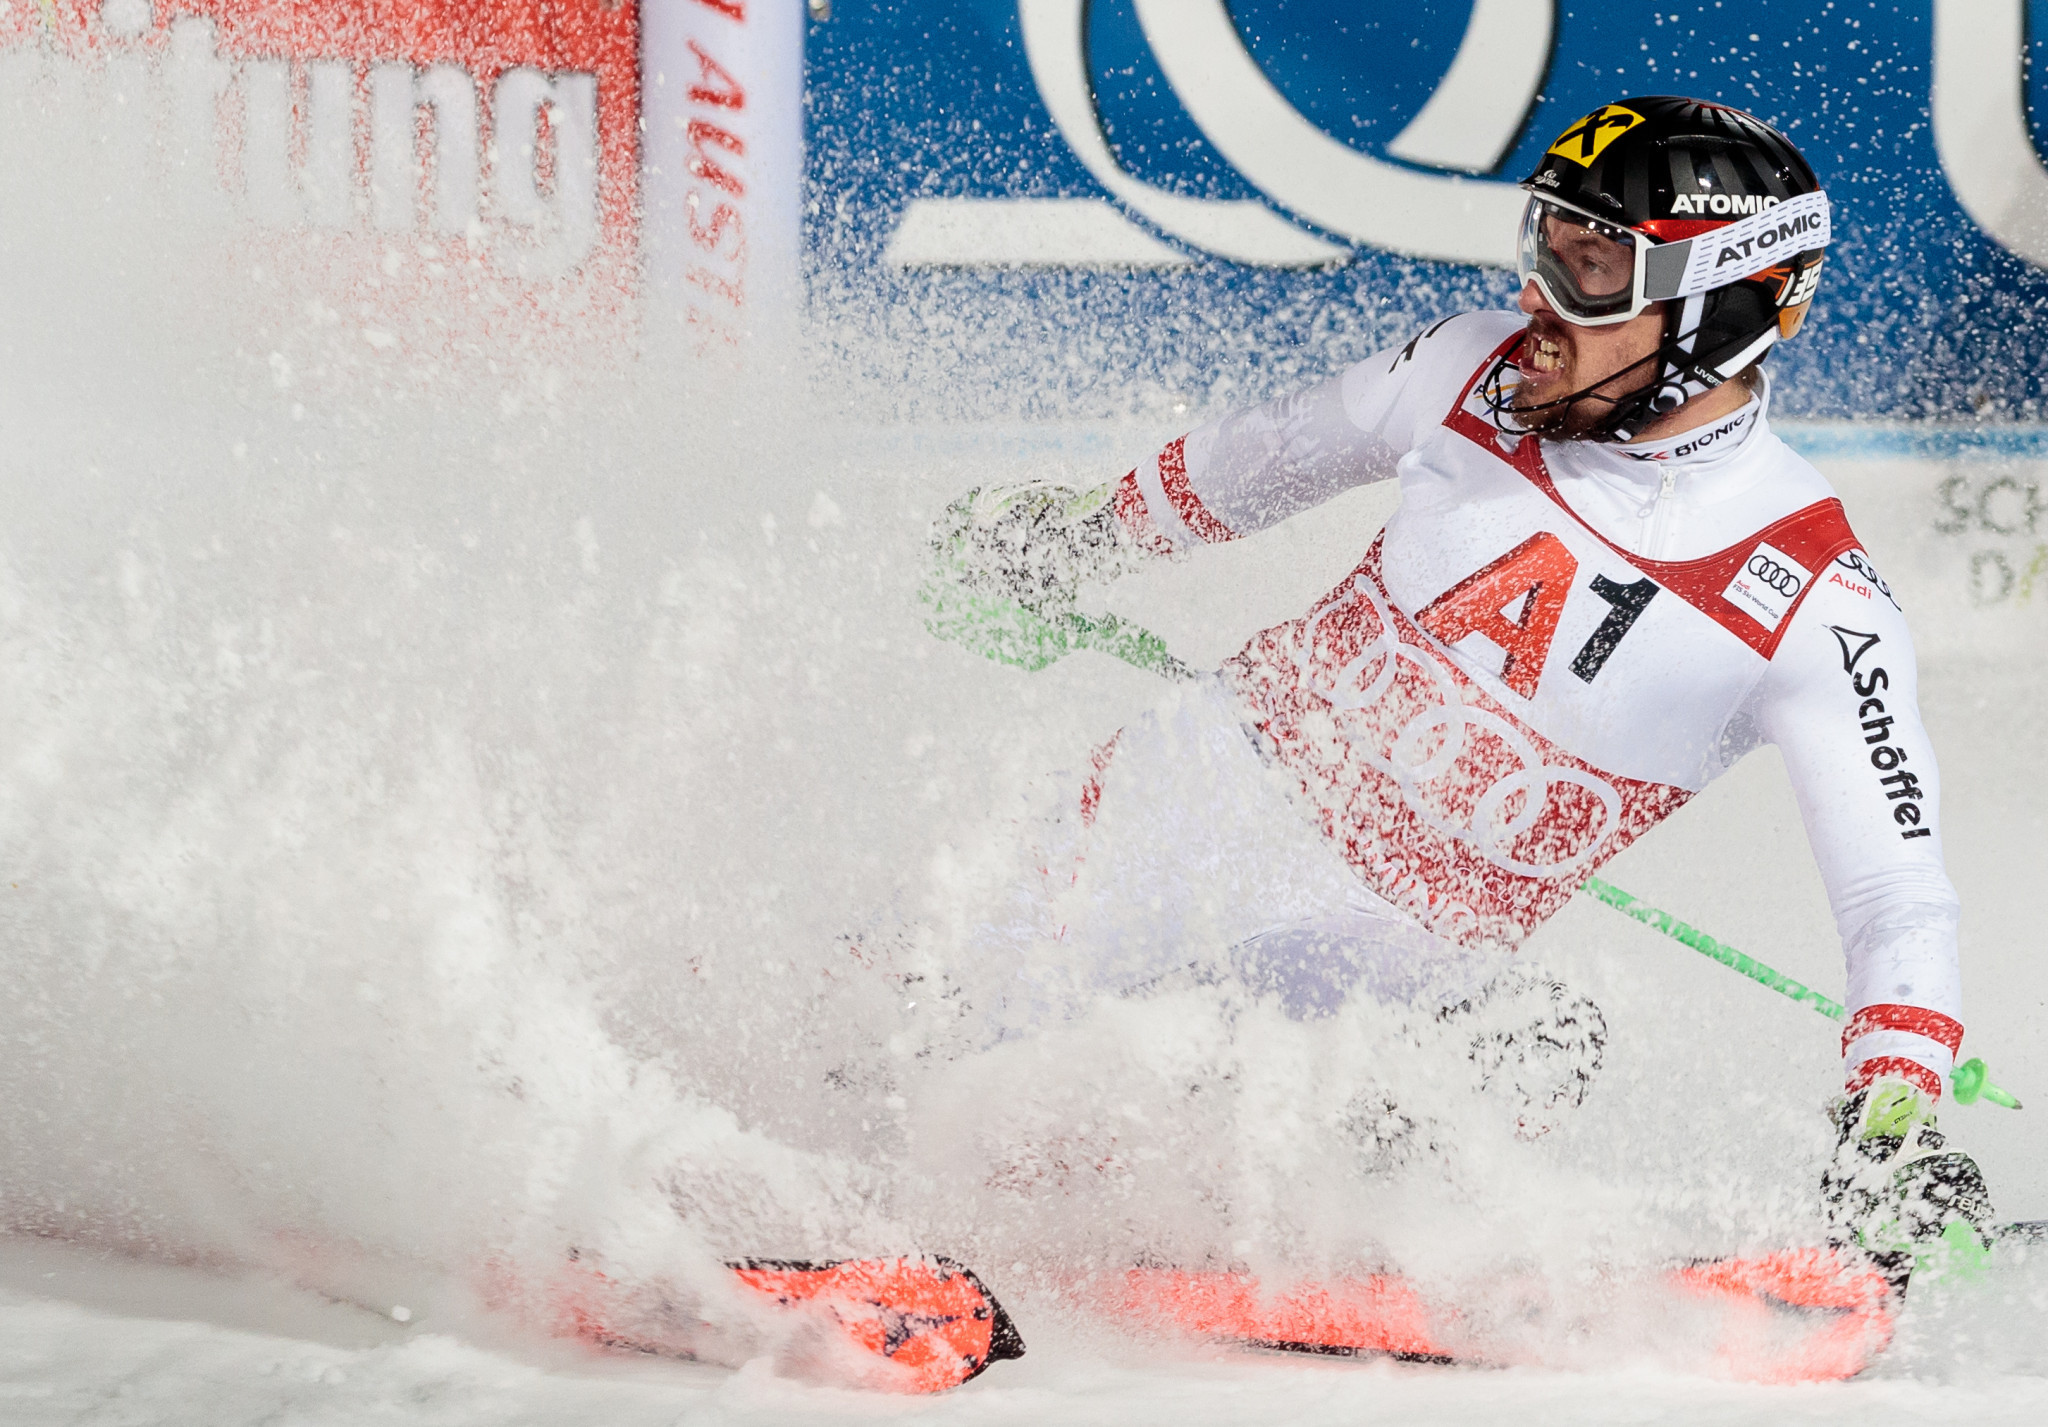 Marcel Hirscher triumphed at the night slalom on home snow ©Getty Images